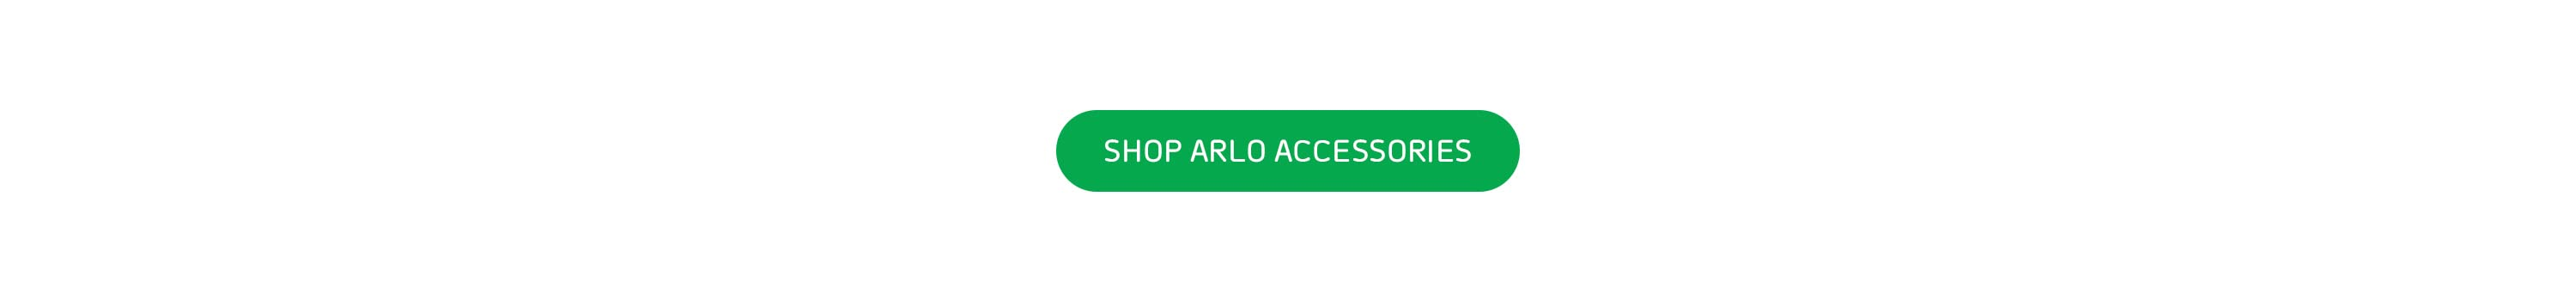 SHOP ARLO ACCESSORIES BG